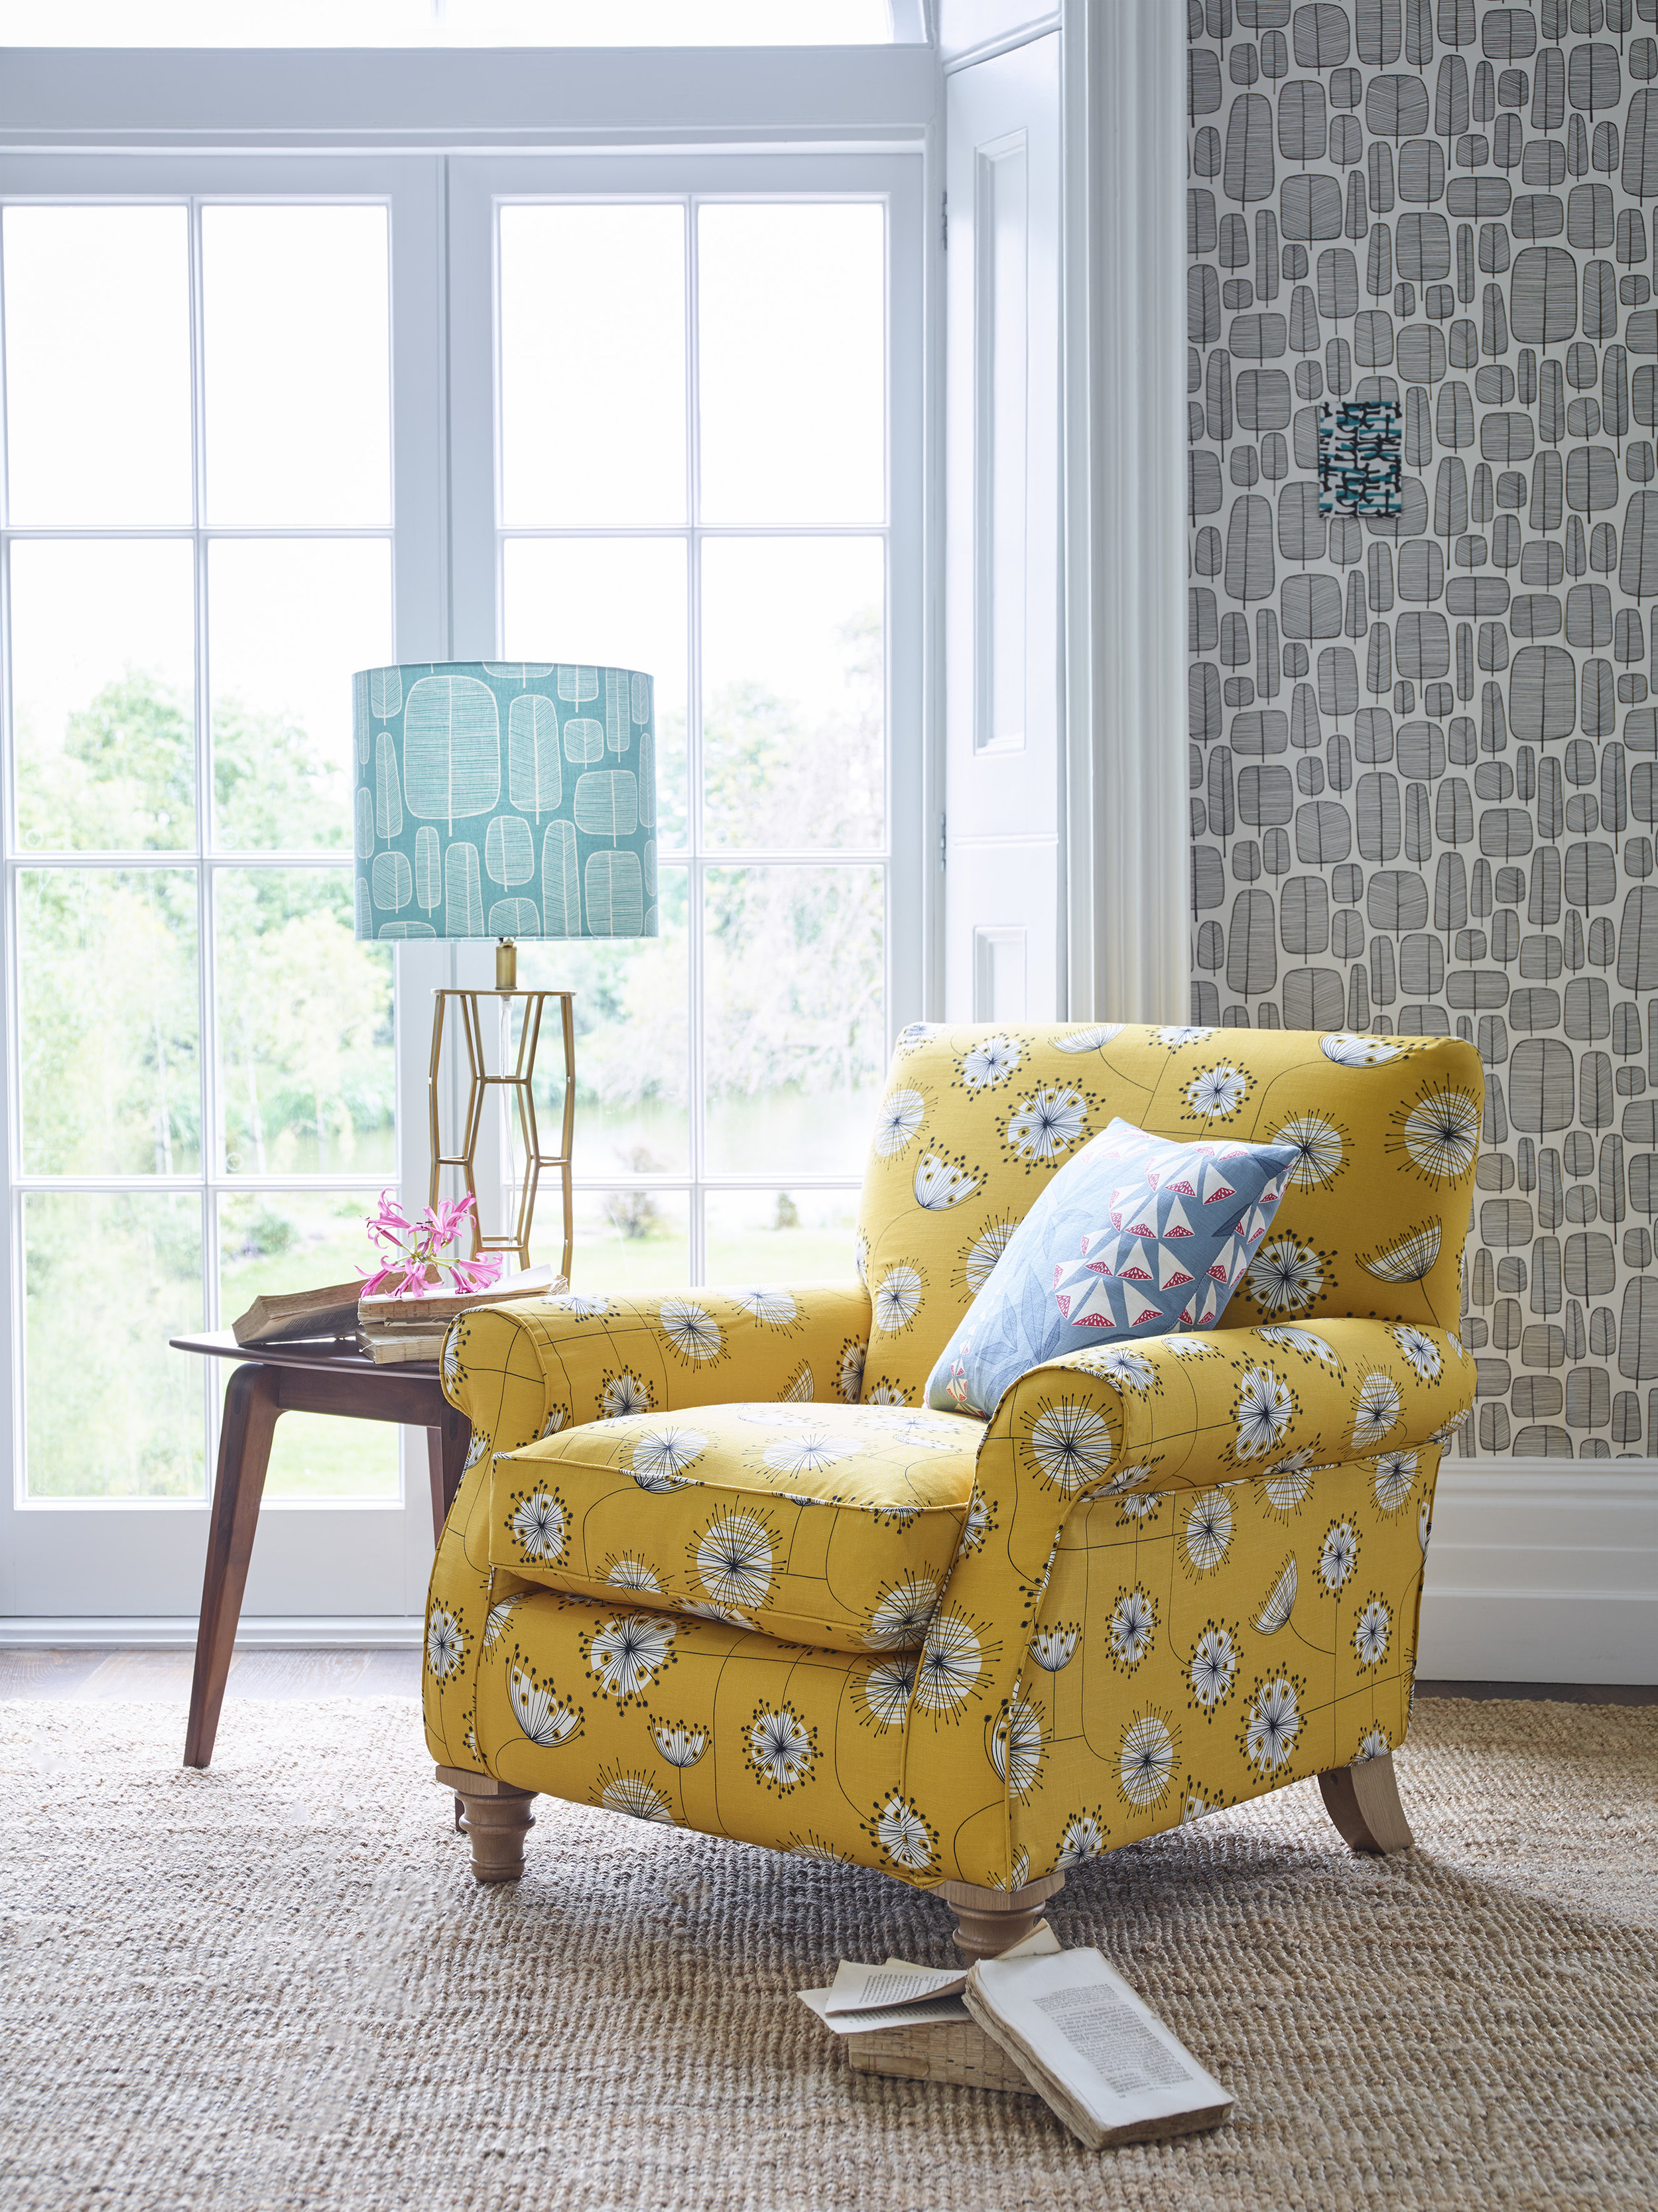 """Halstead Chair in Dandelion Mobile Sunflower Yellow and White Fabric £889, 17"""" Scatter in Foxglove Tiki Fabric £59."""